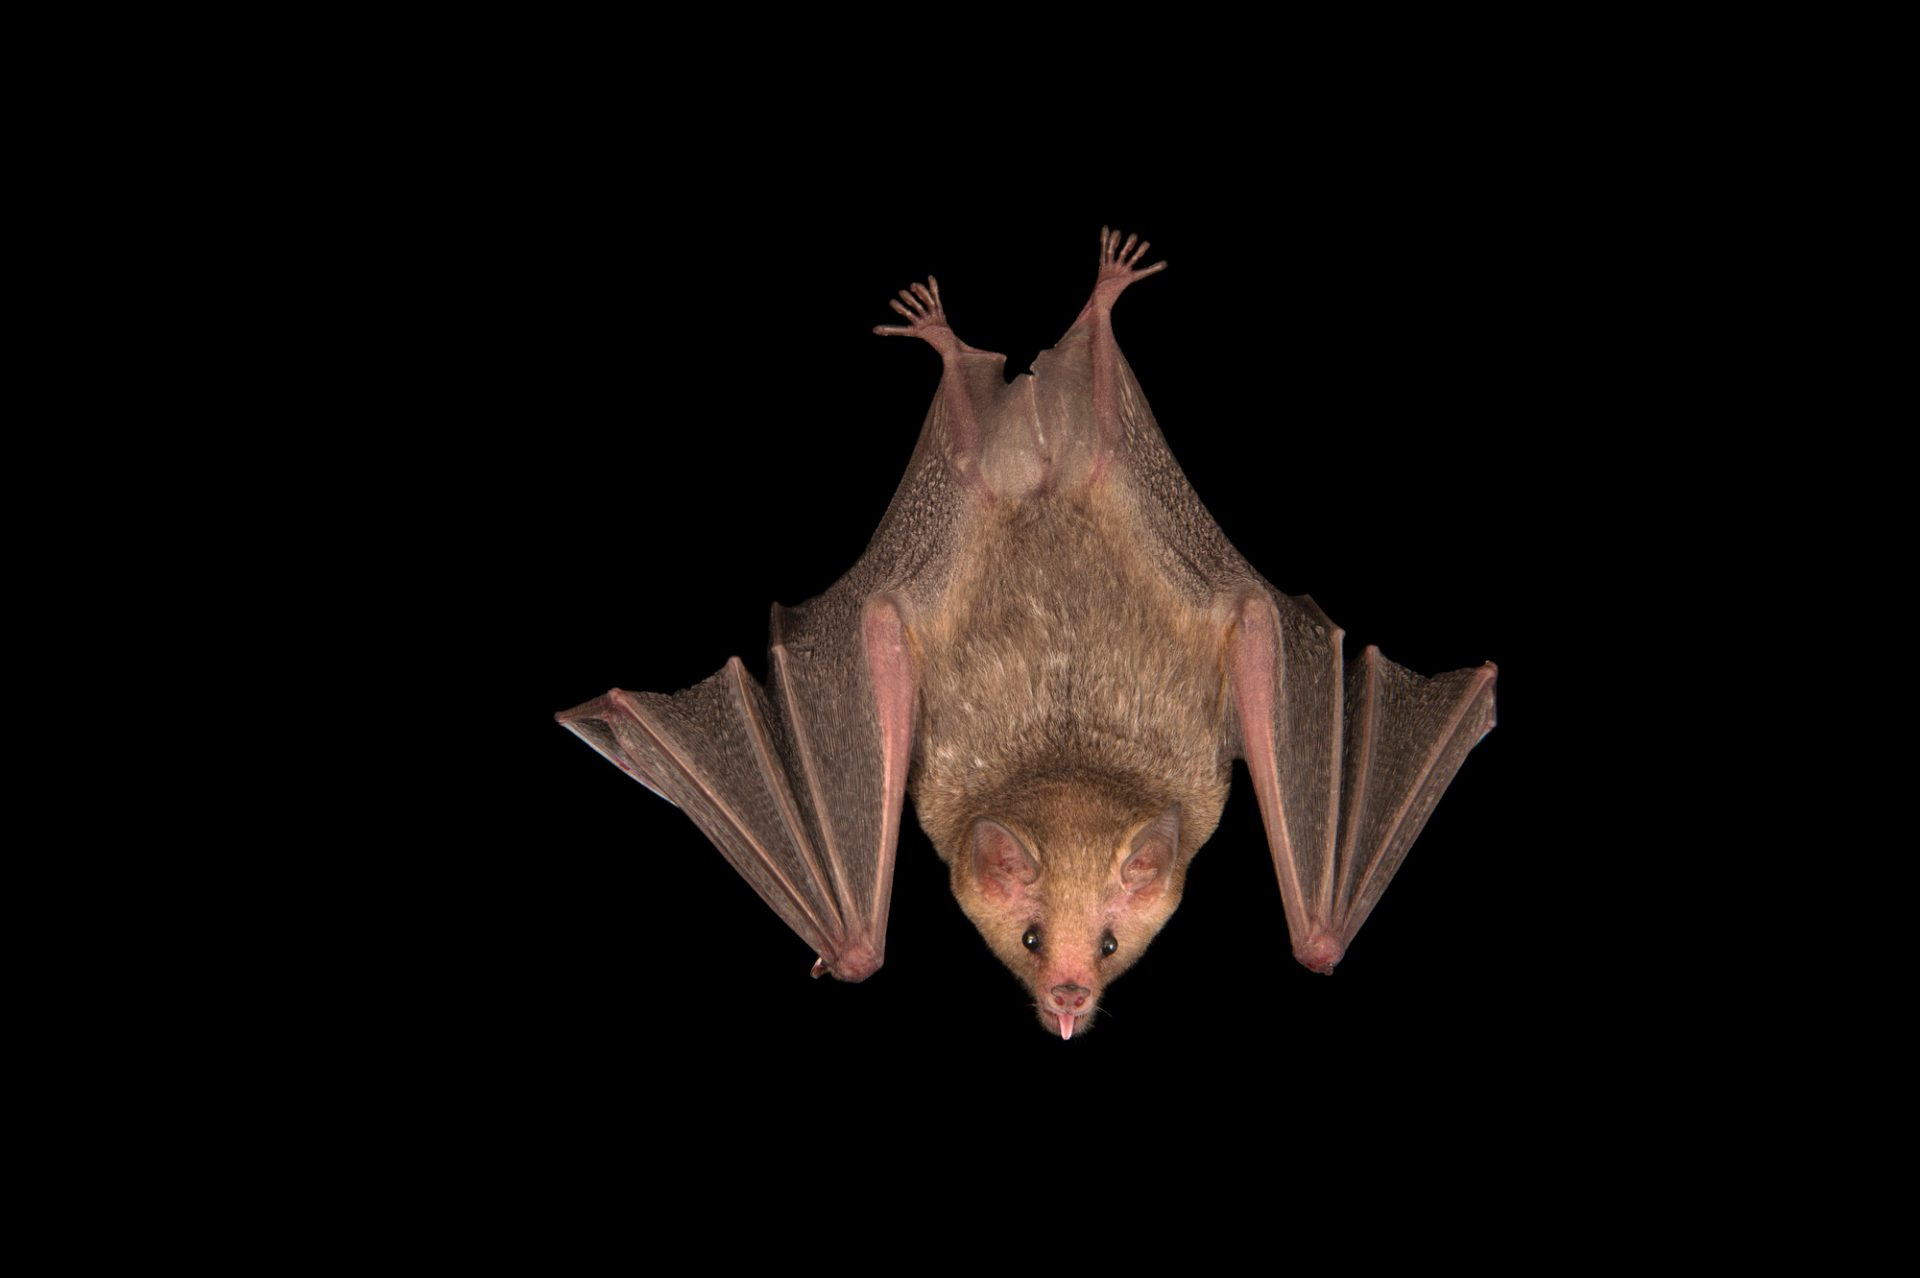 A Curaçaoan long-nosed bat or southern long-nosed bat (Leptonycteris curasoae) at the Plzen Zoo in the Czech Republic. This species is listed as vulnerable.